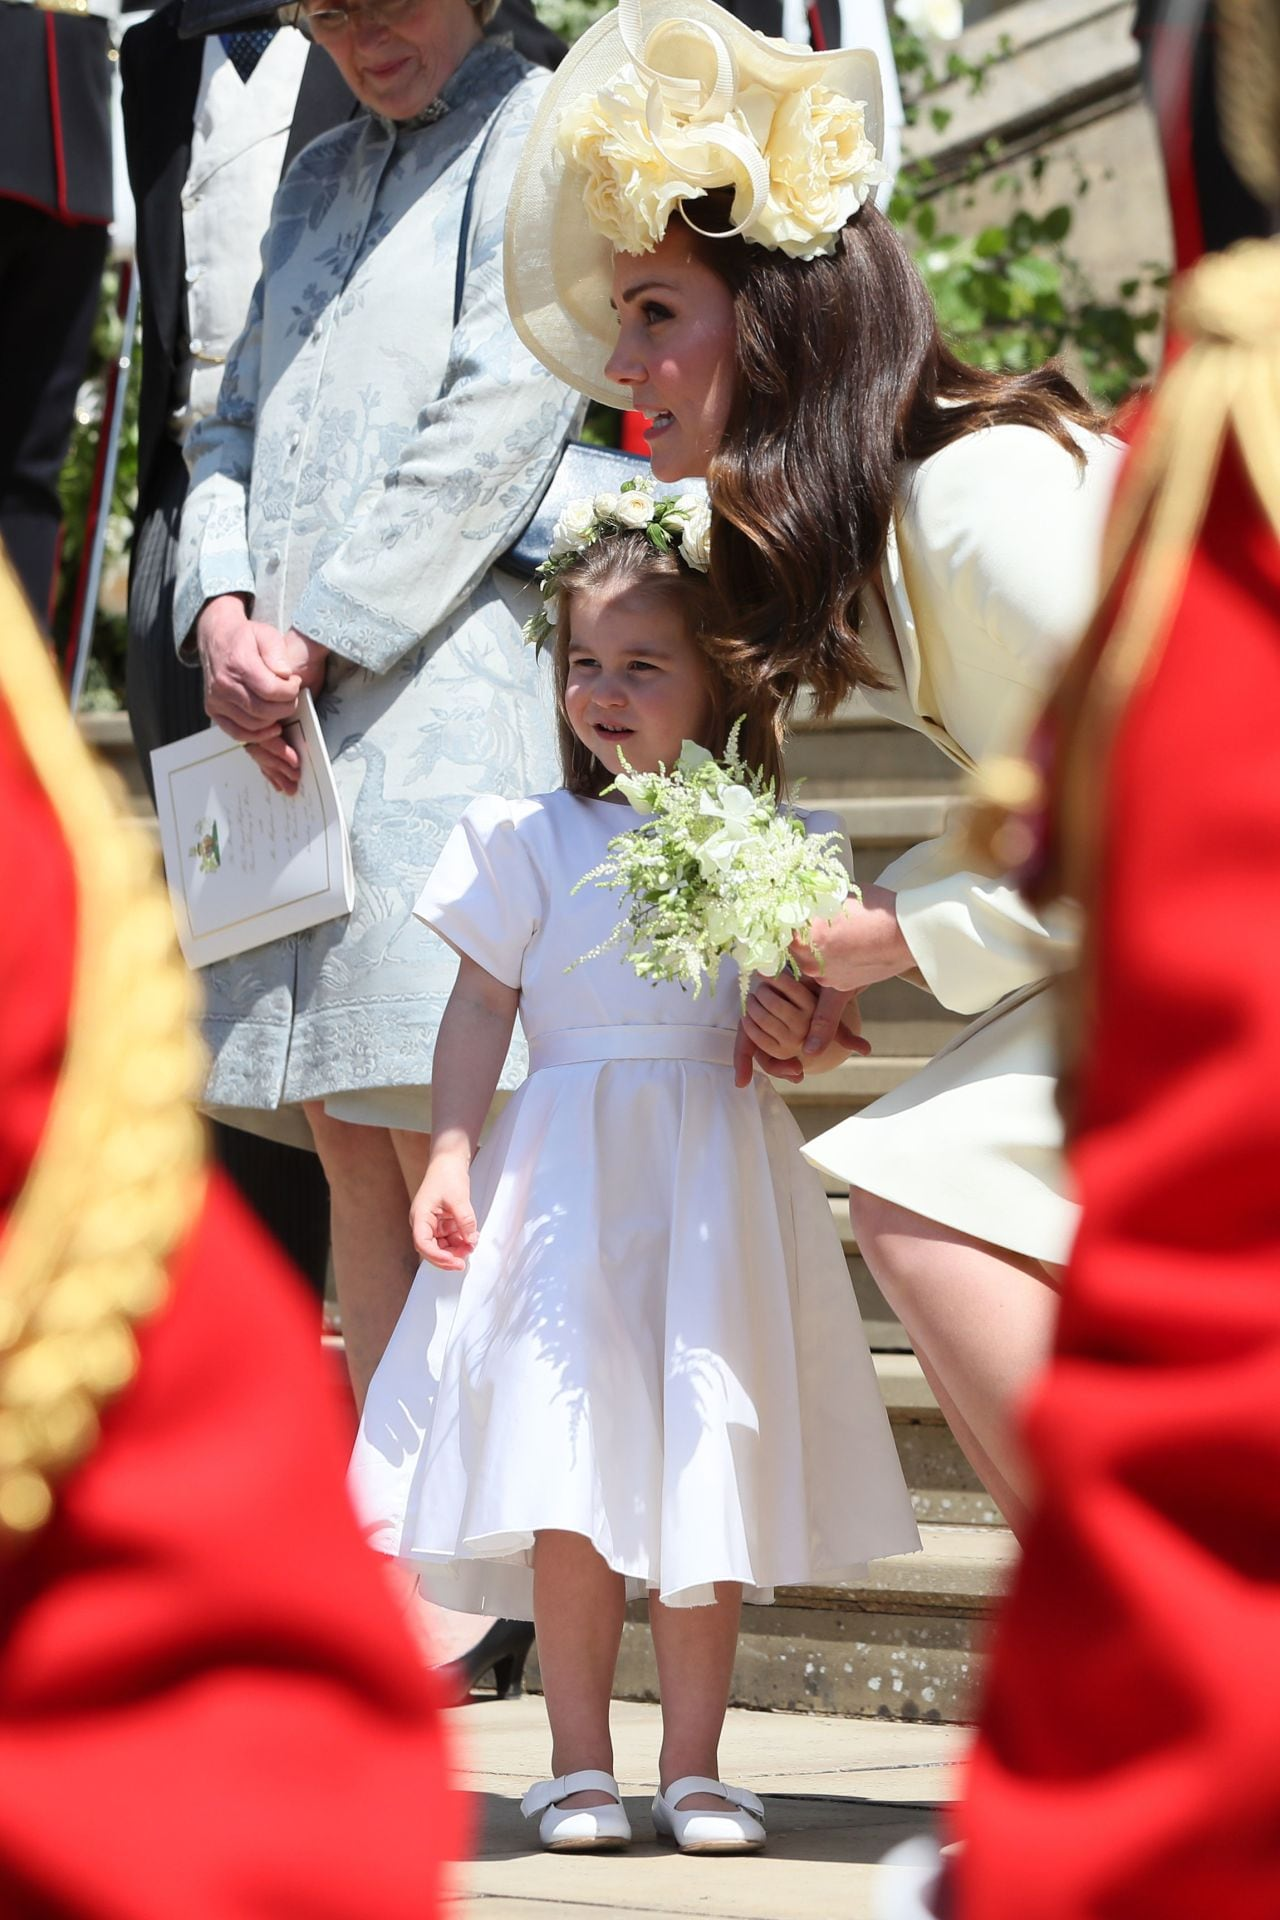 See all the adorable photos of Prince George and Princess Charlotte at the royal wedding